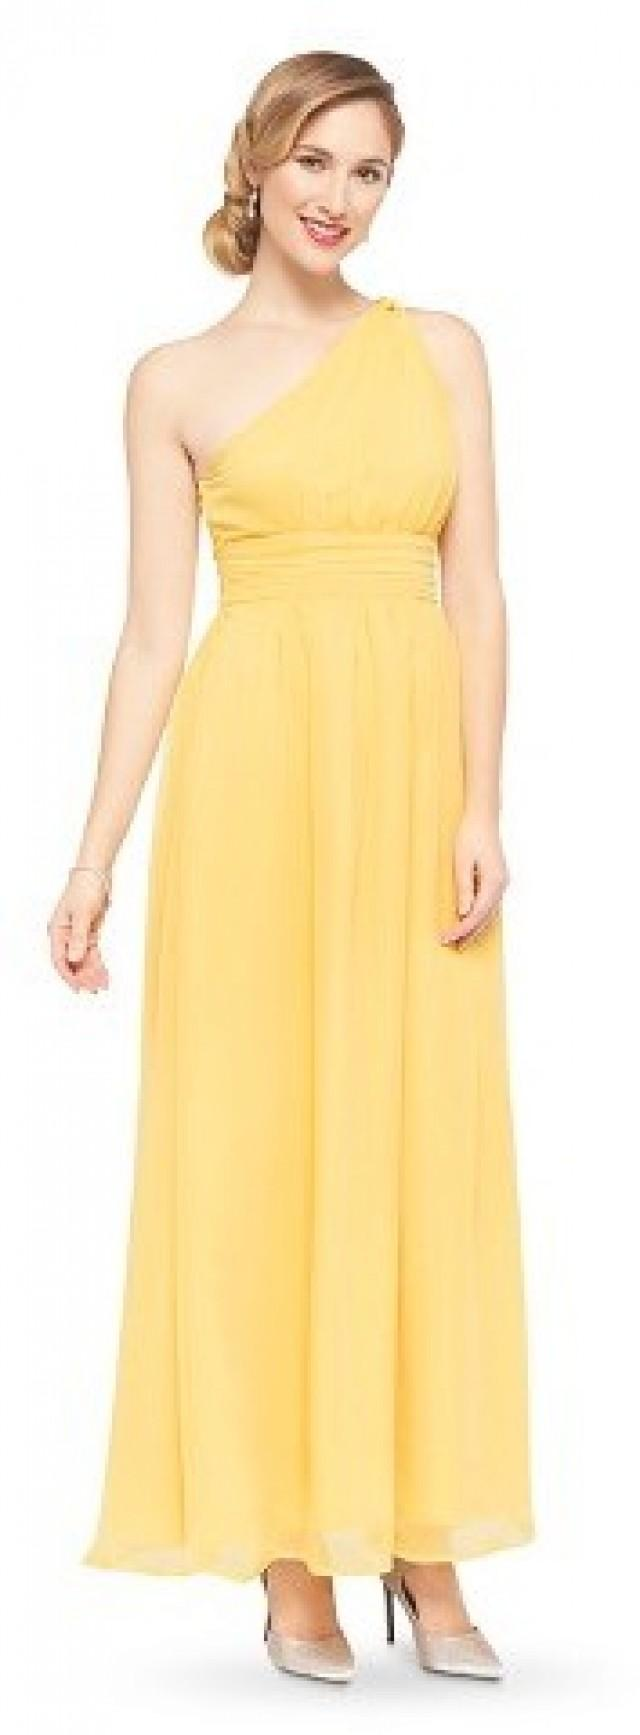 Tevolio women 39 s plus size chiffon one shoulder maxi for Yellow maxi dress for wedding